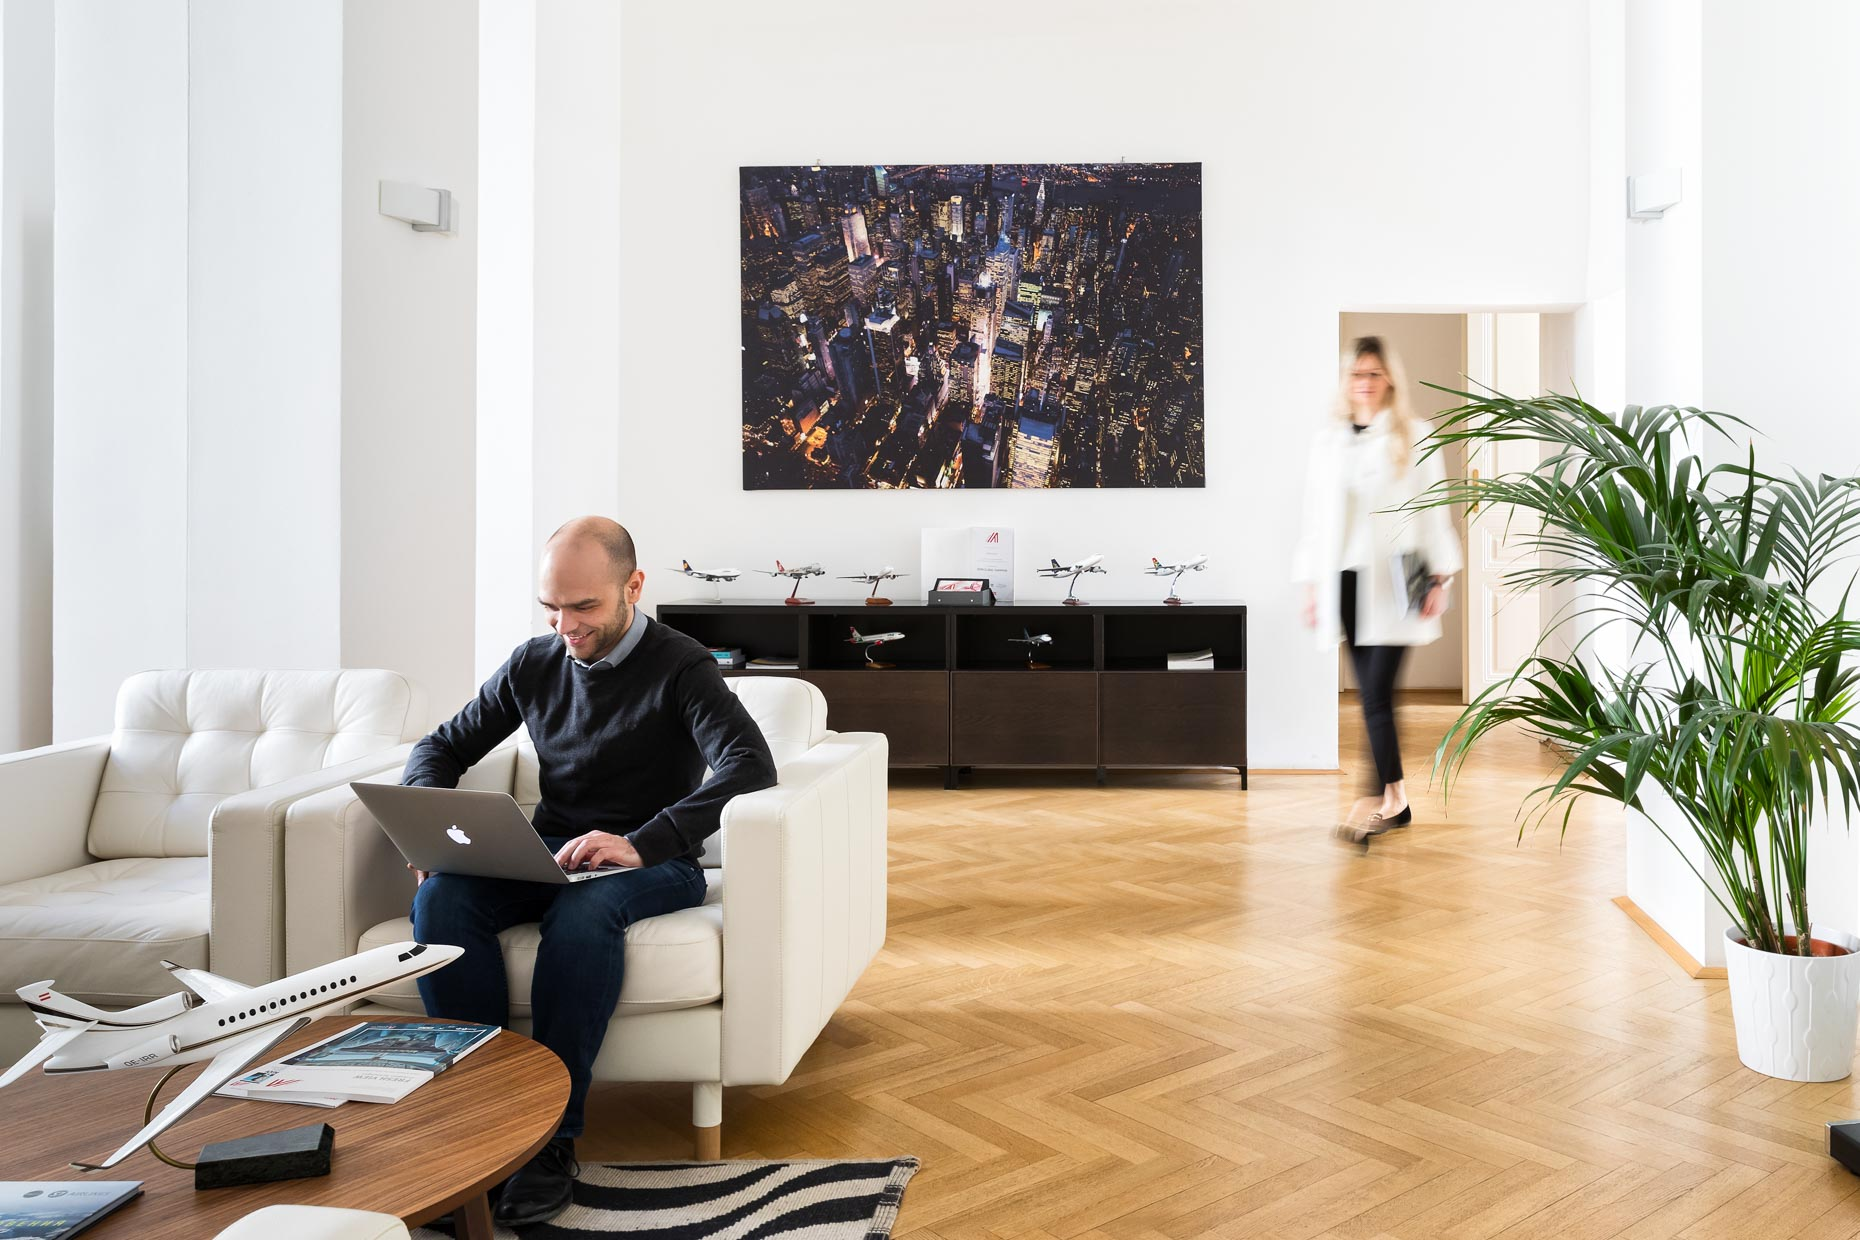 Office Interiorfotografie und Corporate Lifestyle Fotograf Shooting